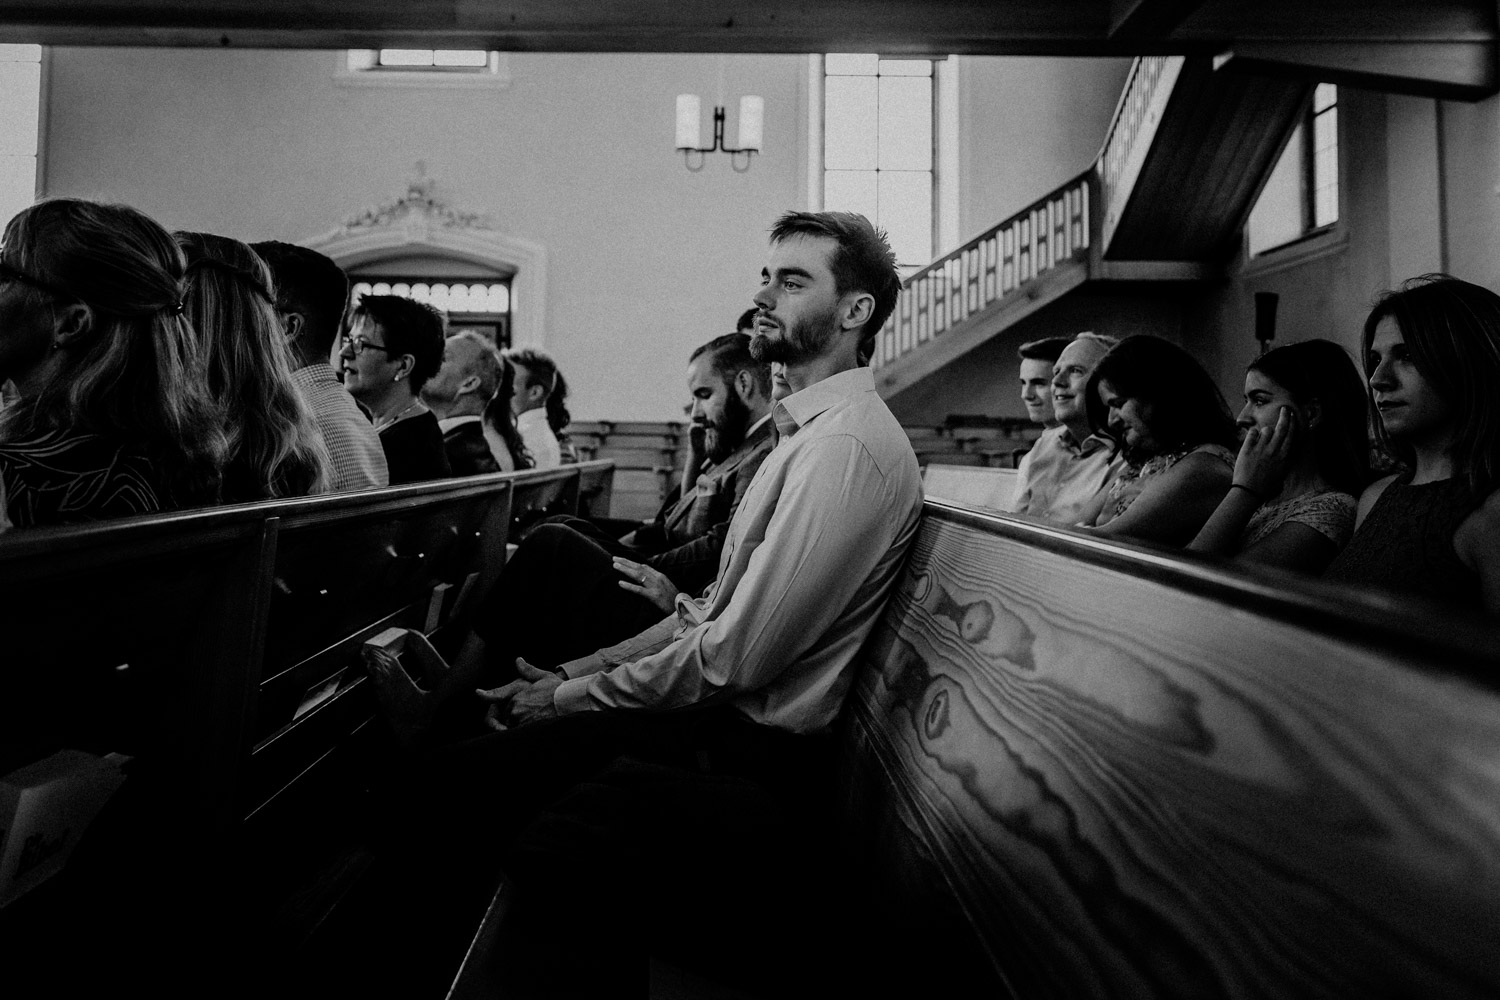 Wedding photographer in Switzerland church wedding guest